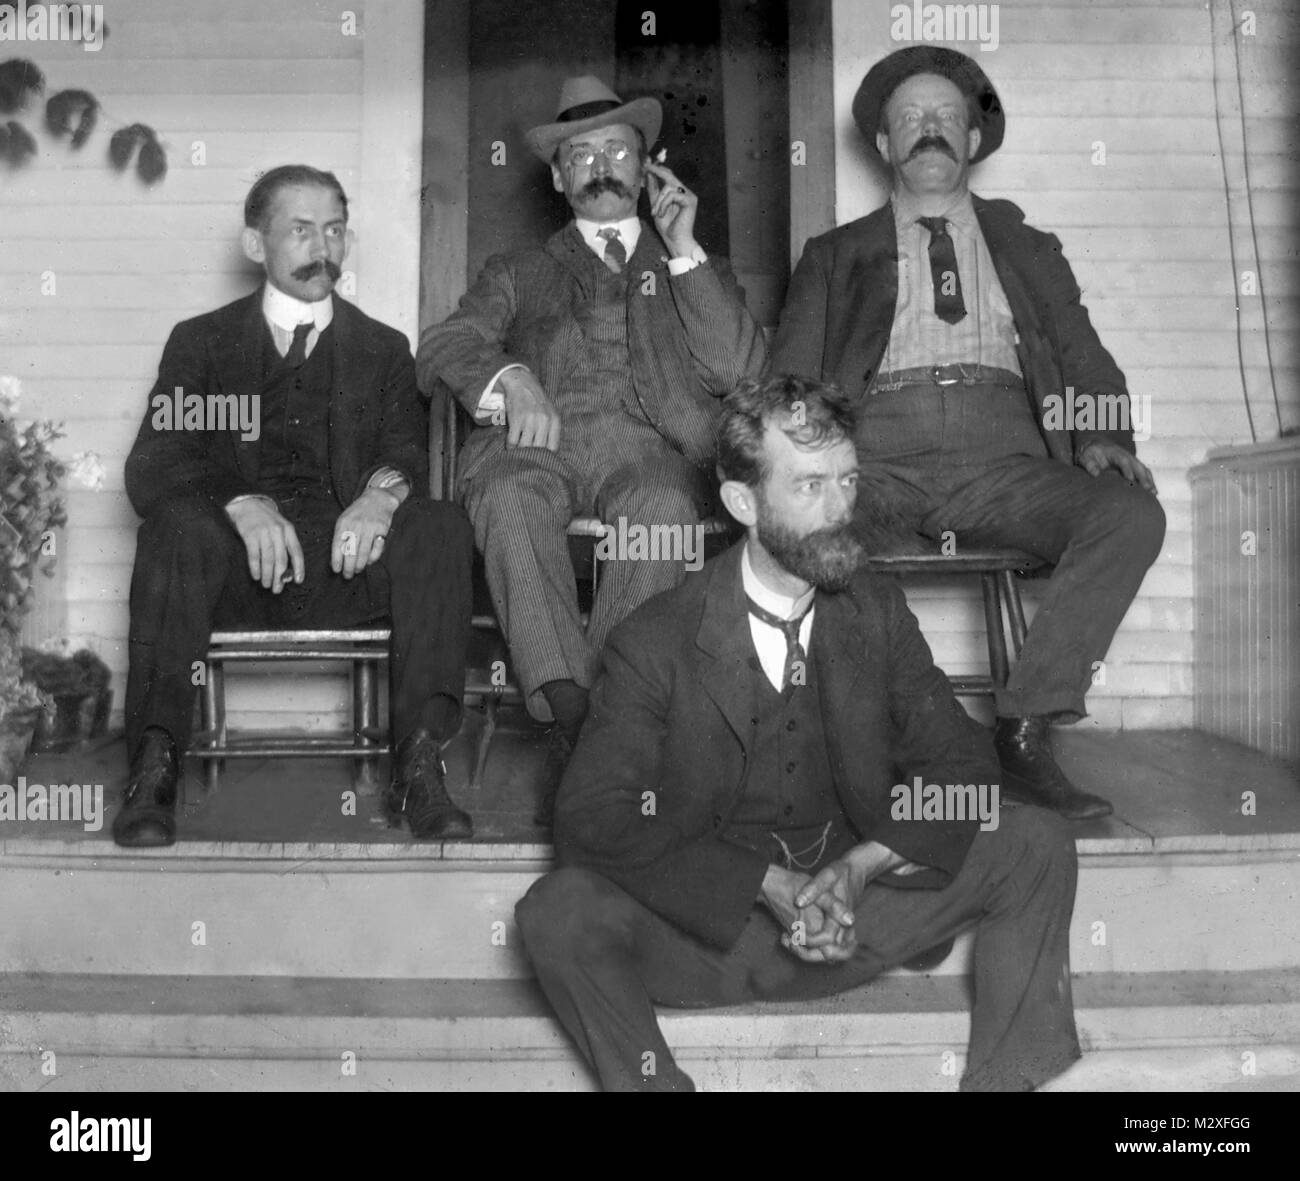 Four men sit on the porch, ca. 1910. - Stock Image